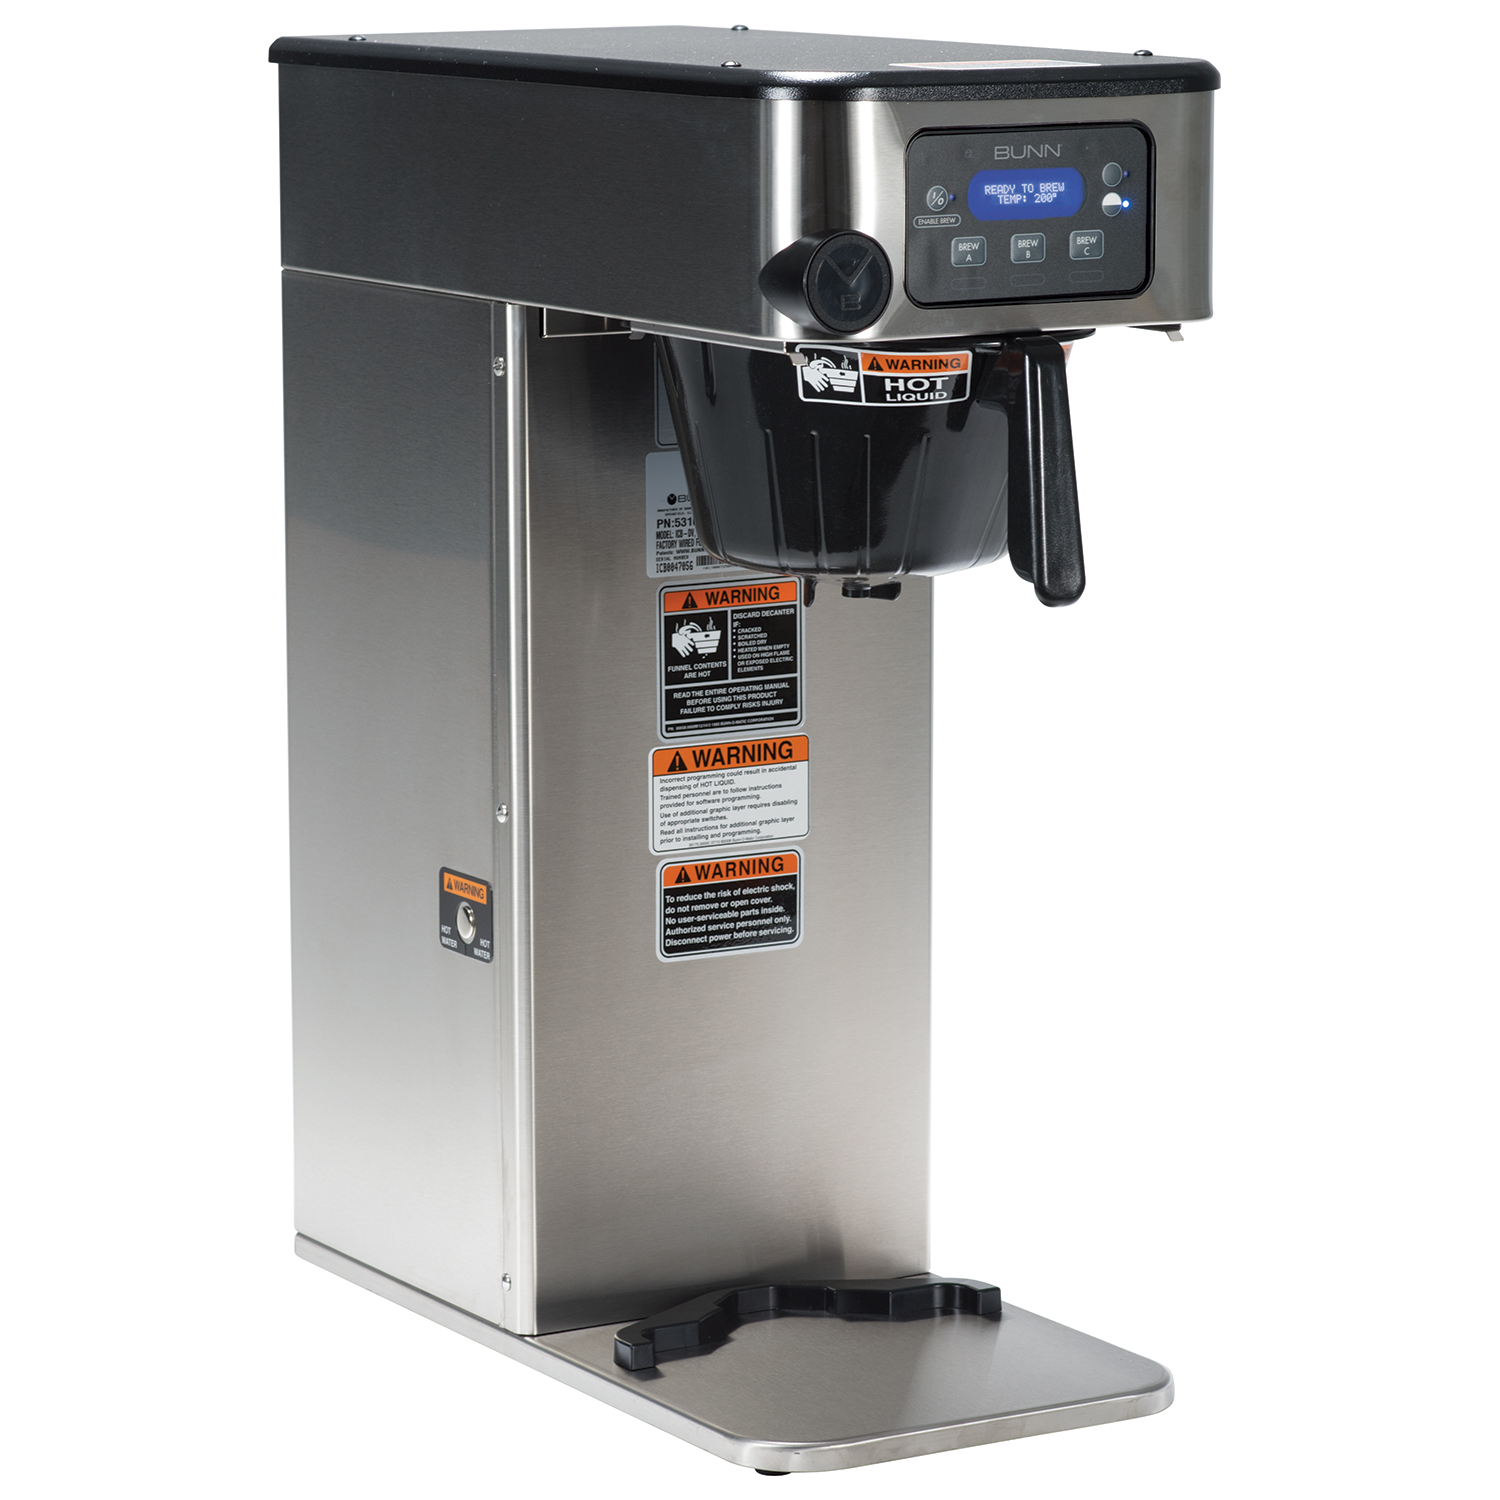 BUNN 53100.0100 coffee brewer for thermal server